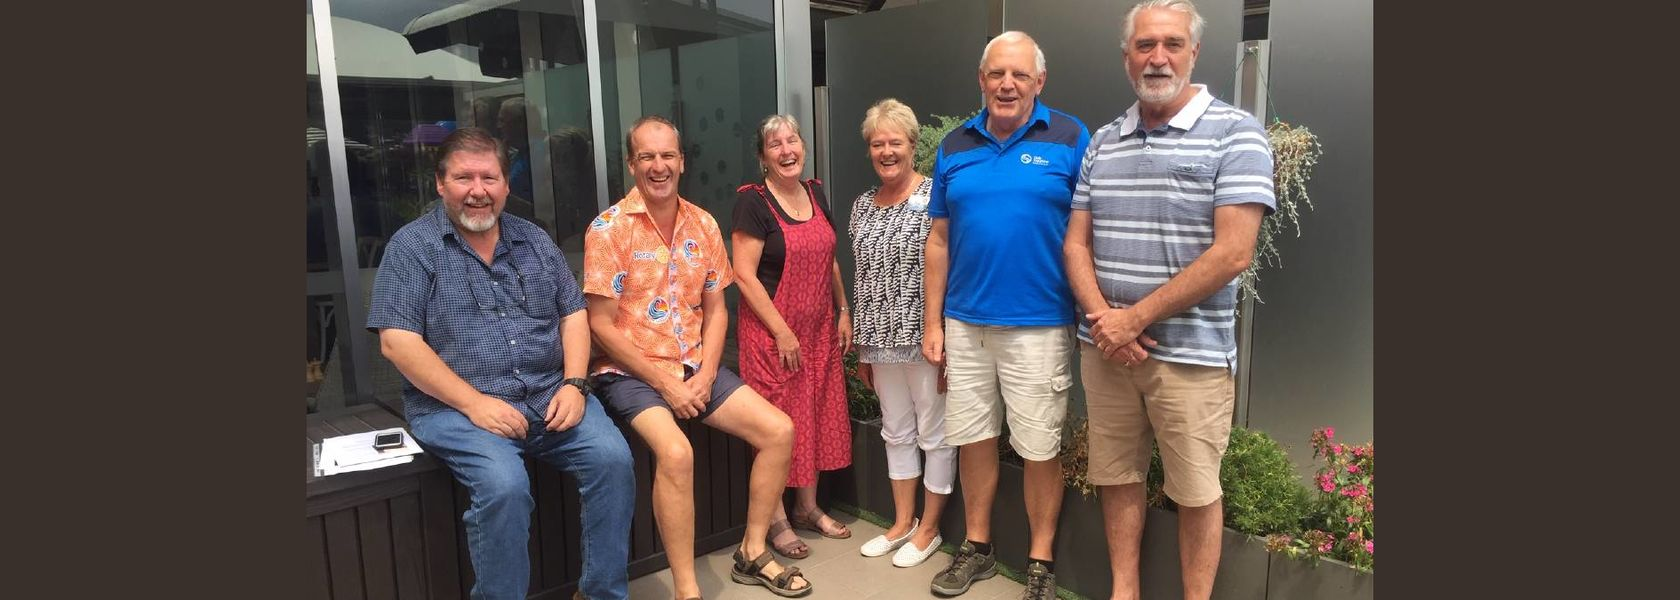 Big Lae donation delights Aussies